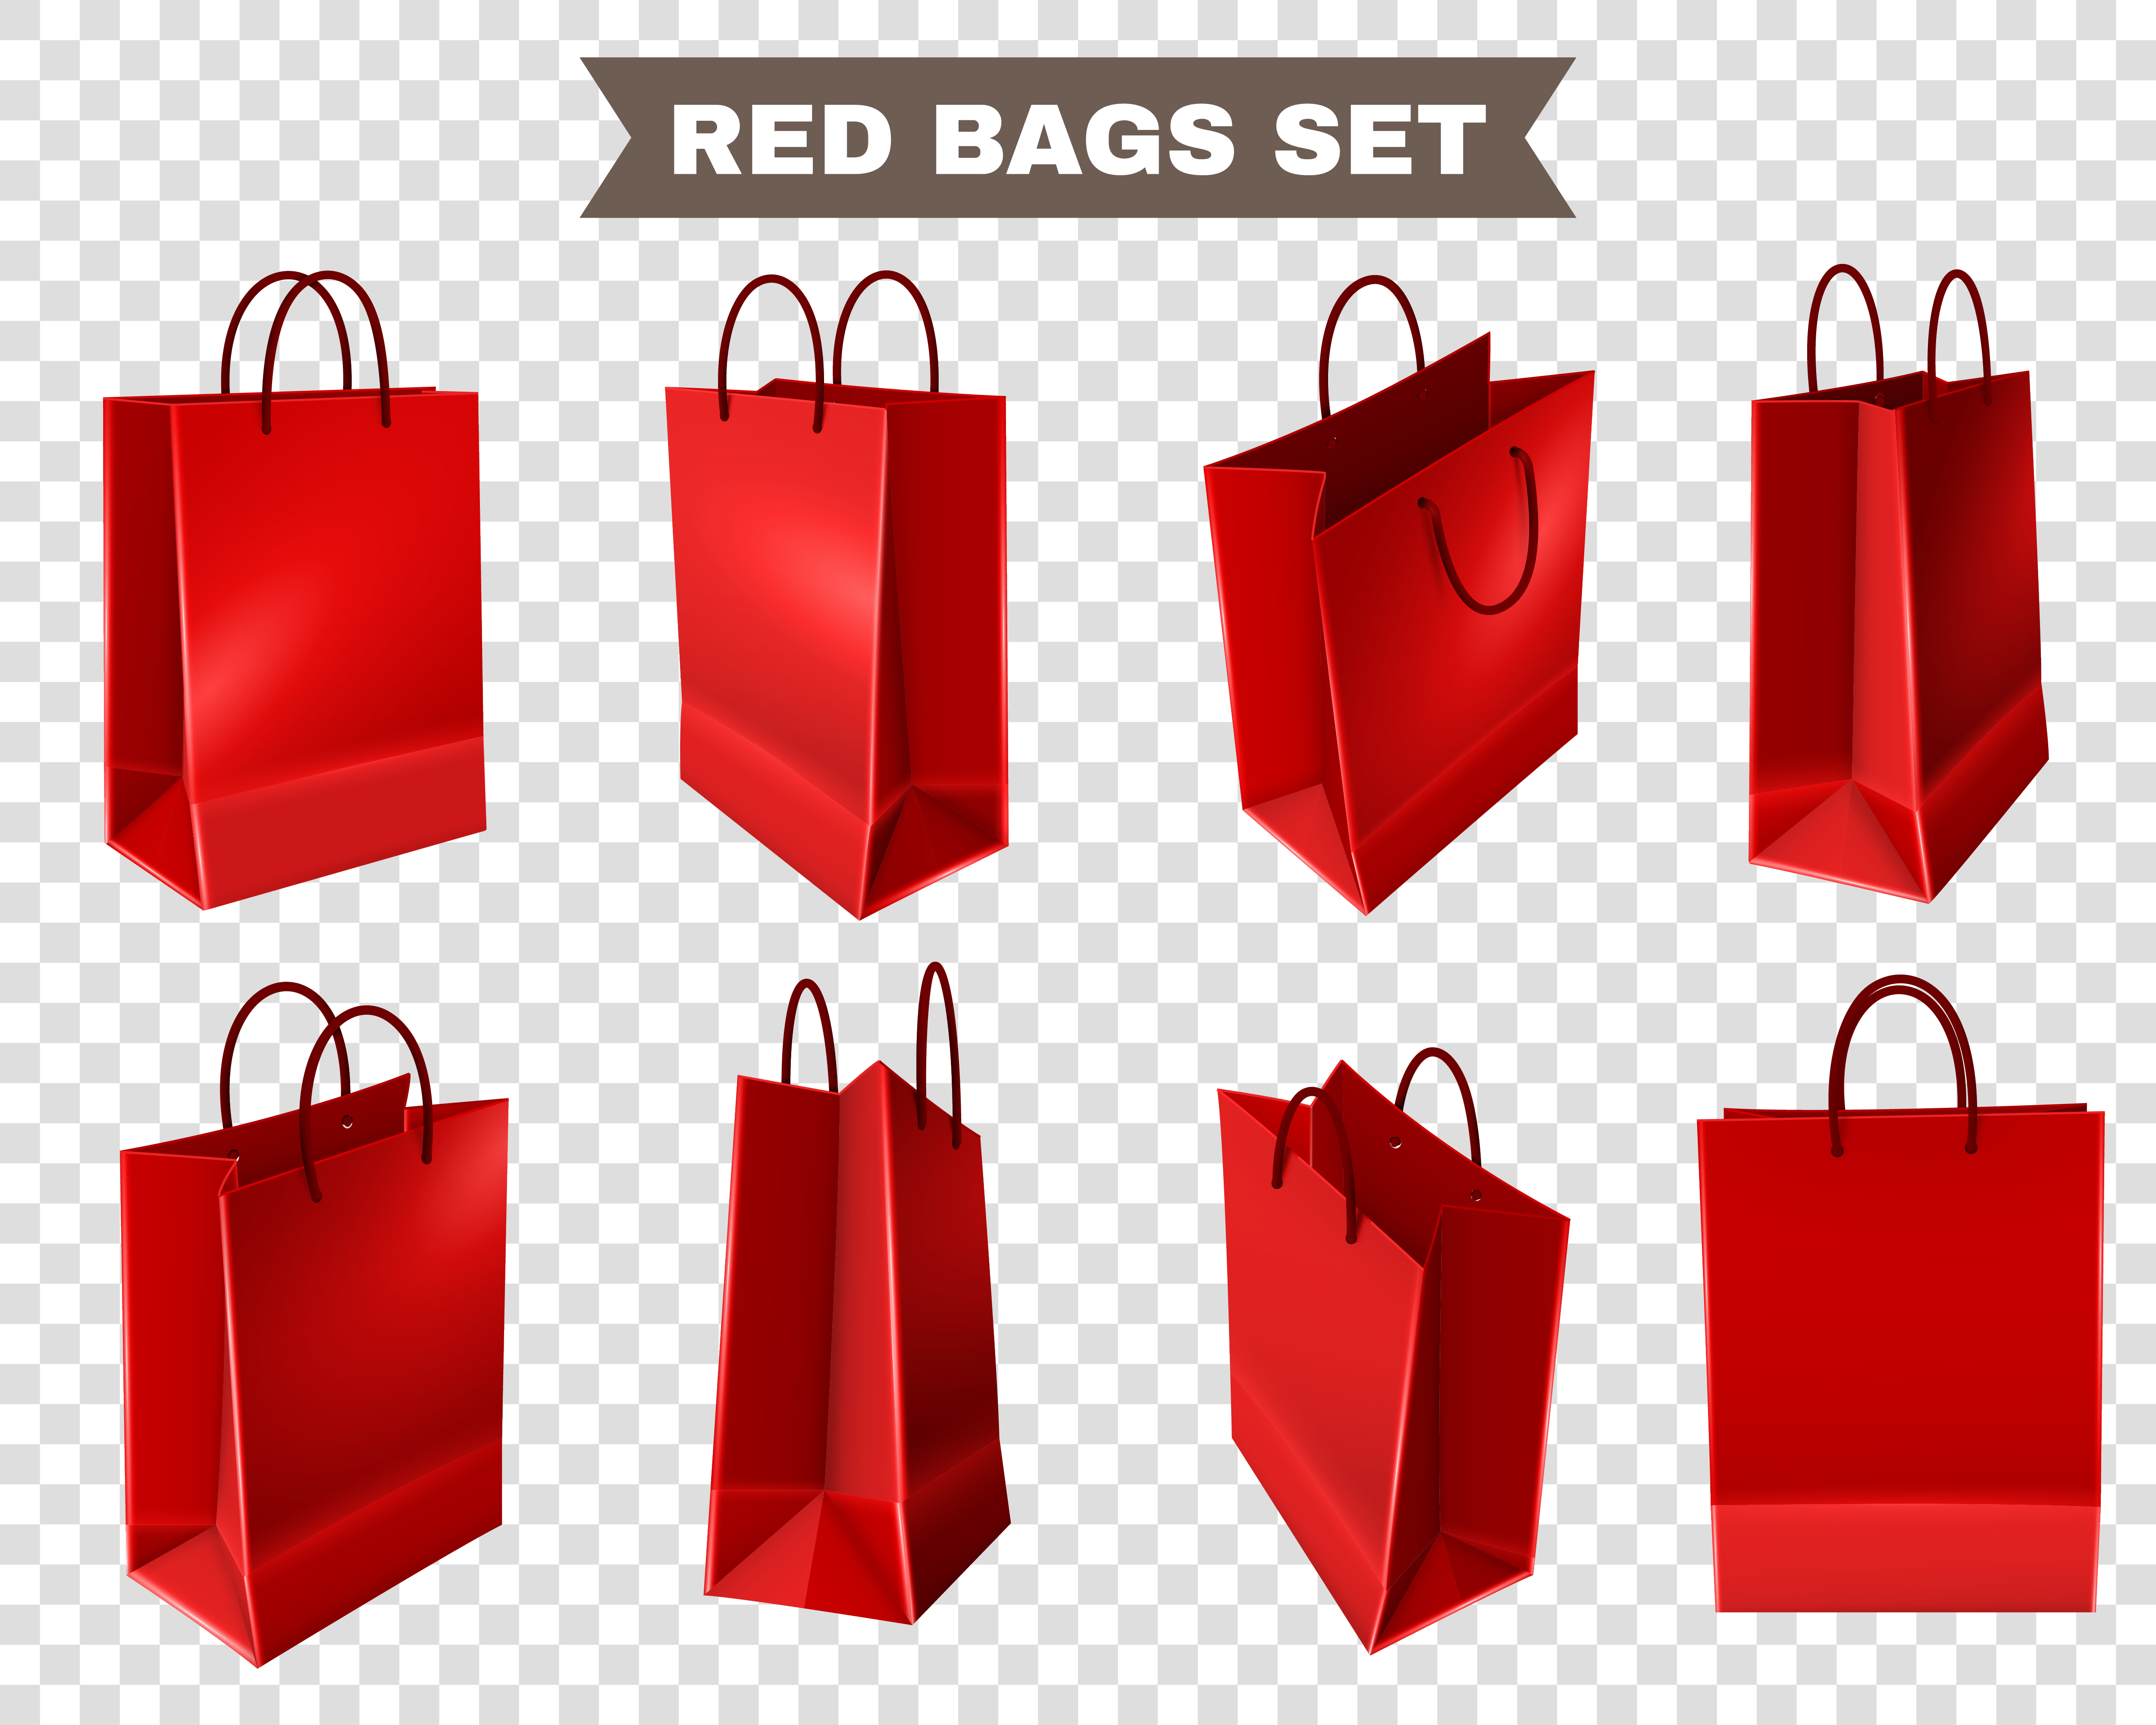 Red Shopping Bags Set Download Free Vector Art Stock